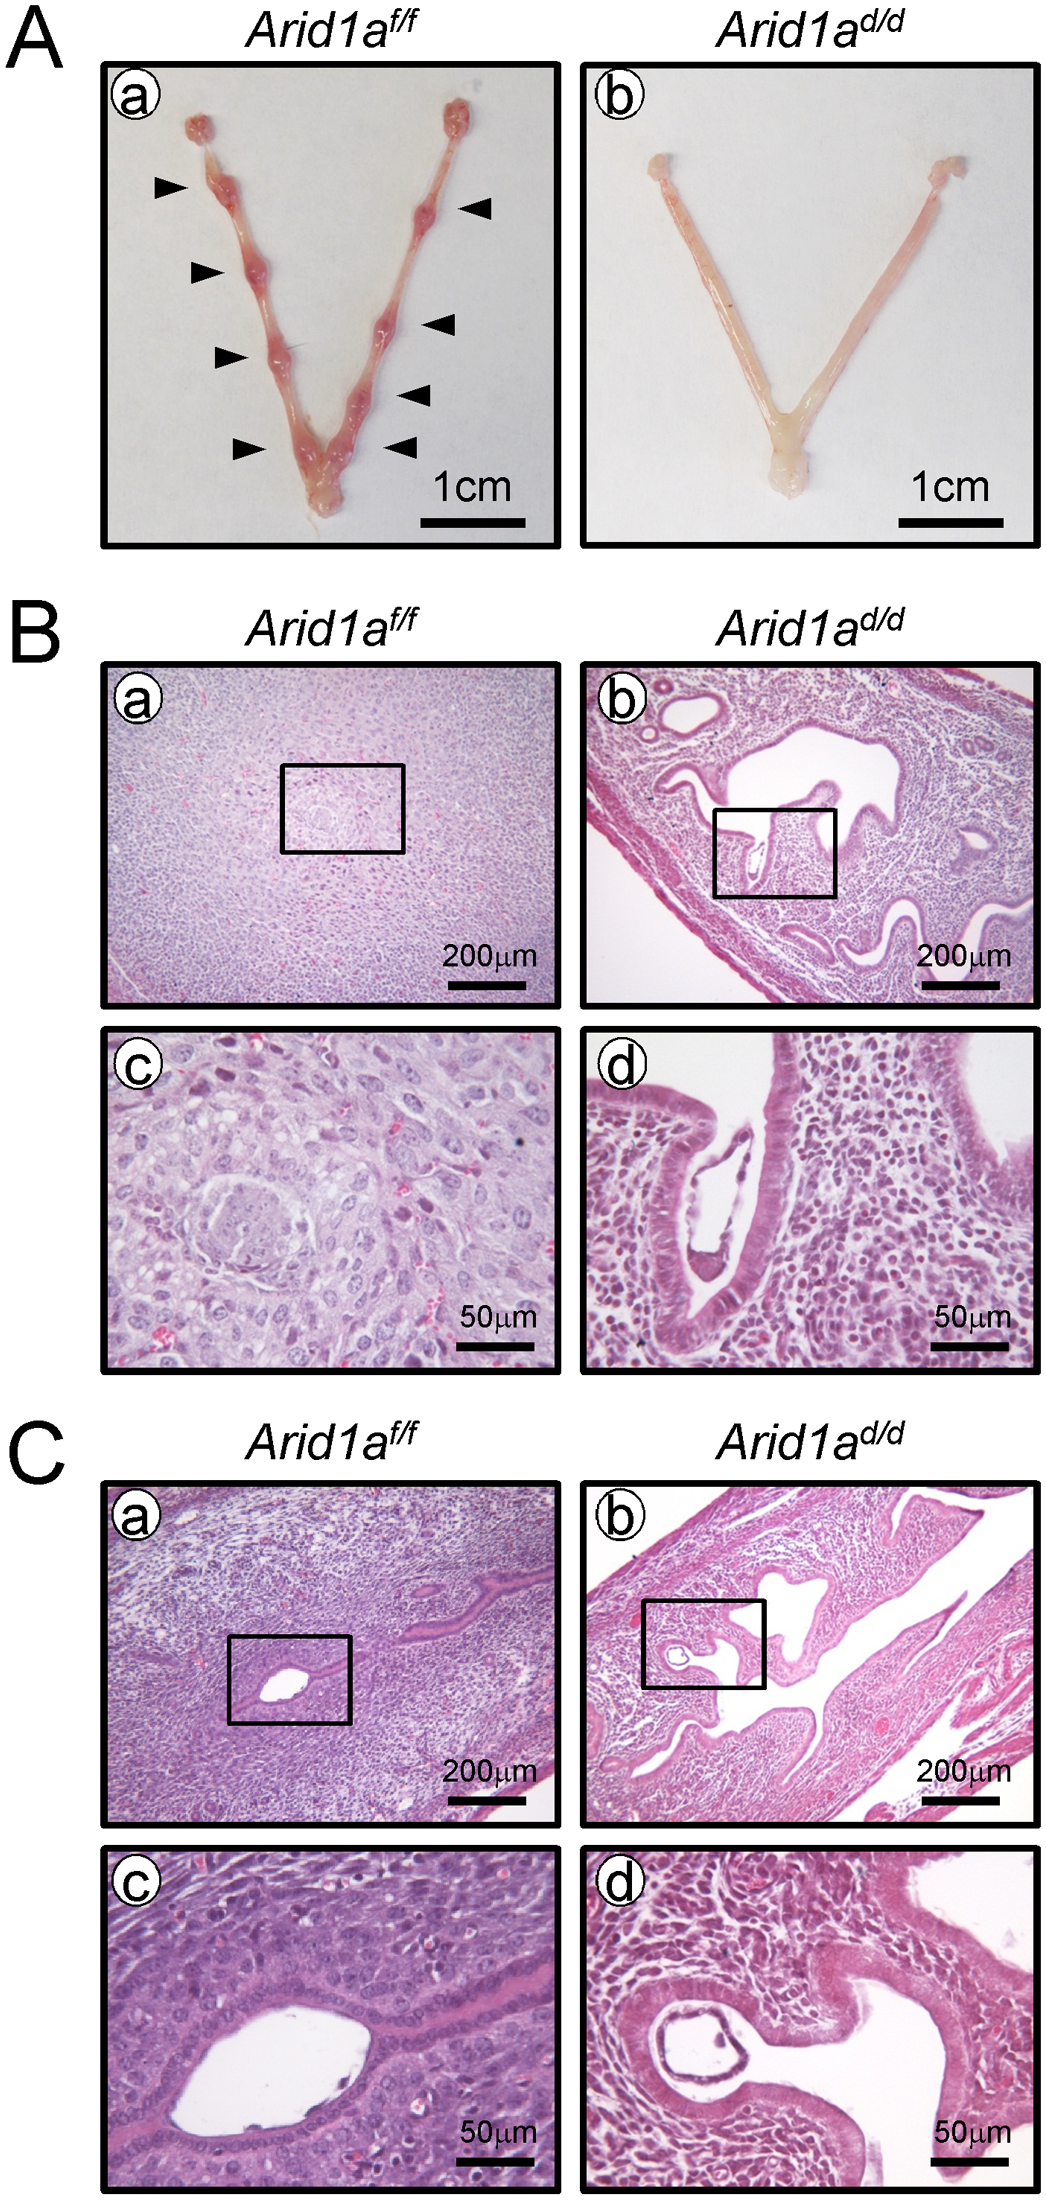 A failure of implantation in <i>Arid1a</i><sup><i>d/d</i></sup> mice.